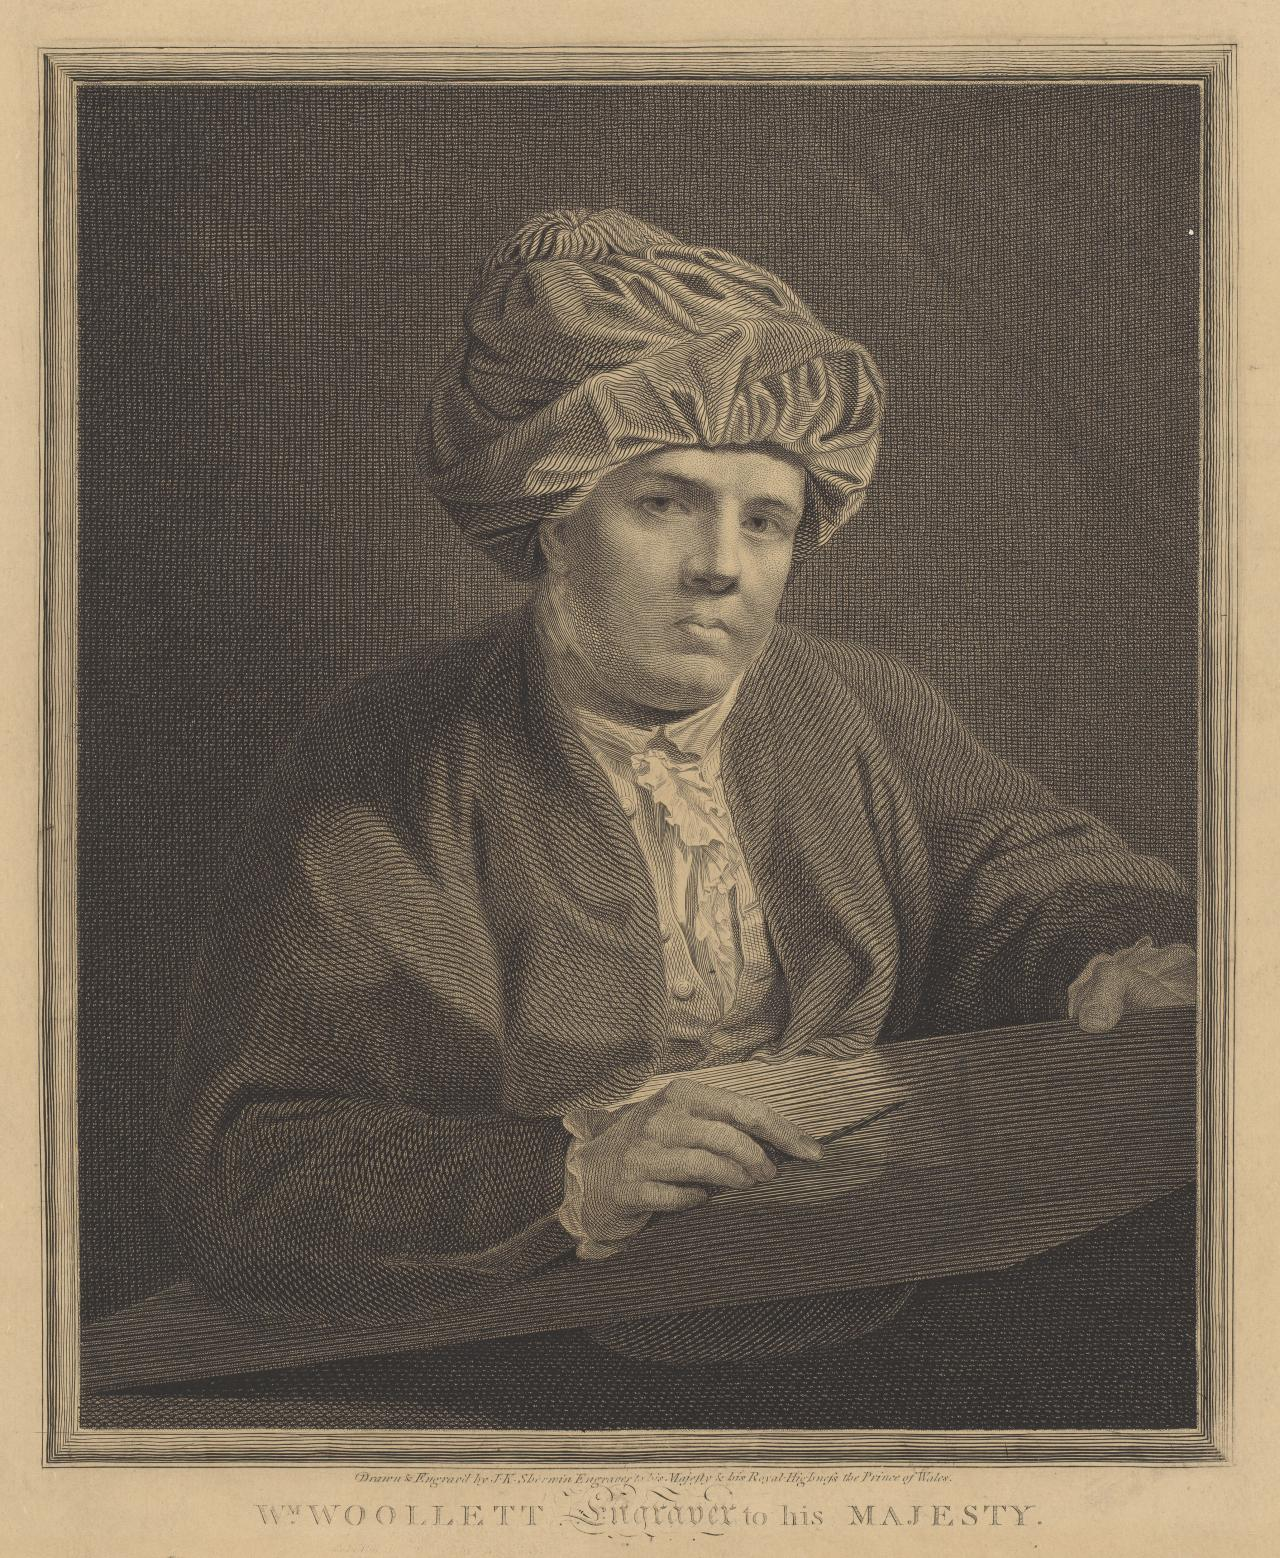 William Woollett, Engraver to His Majesty